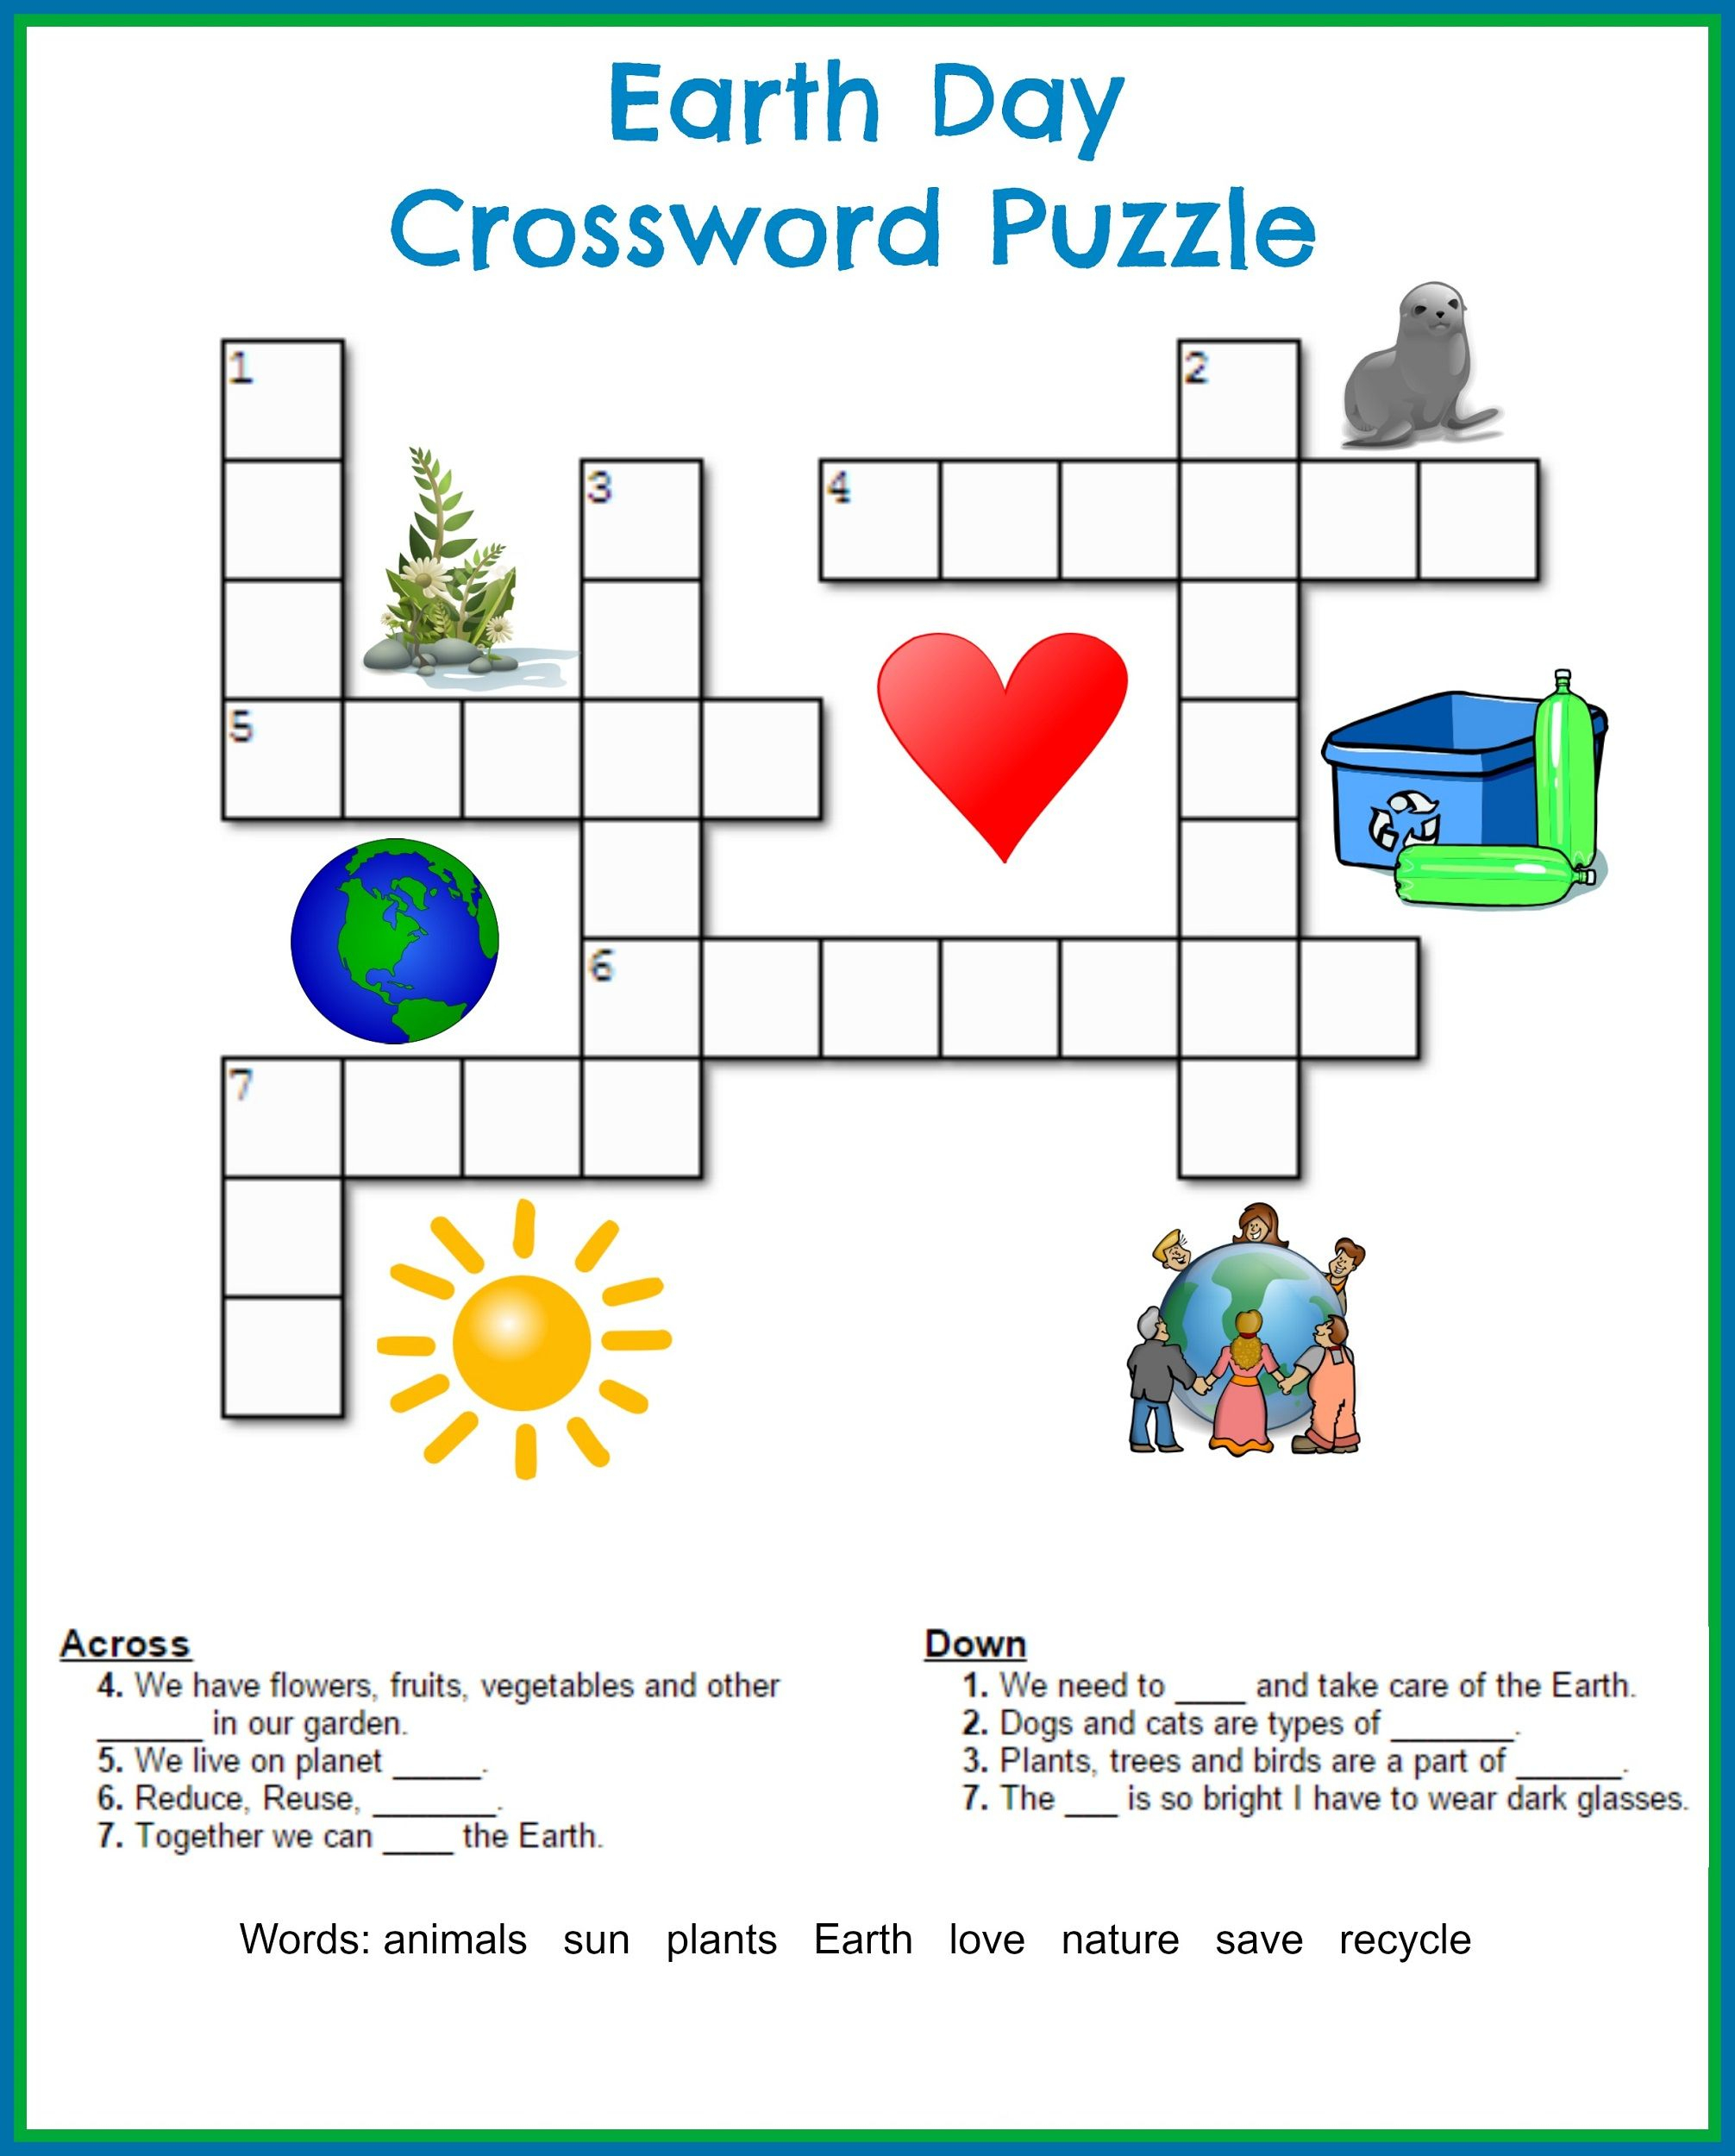 Printable Crossword Puzzles Kids | Crossword Puzzles On Earth - Recycling Crossword Puzzle Printable